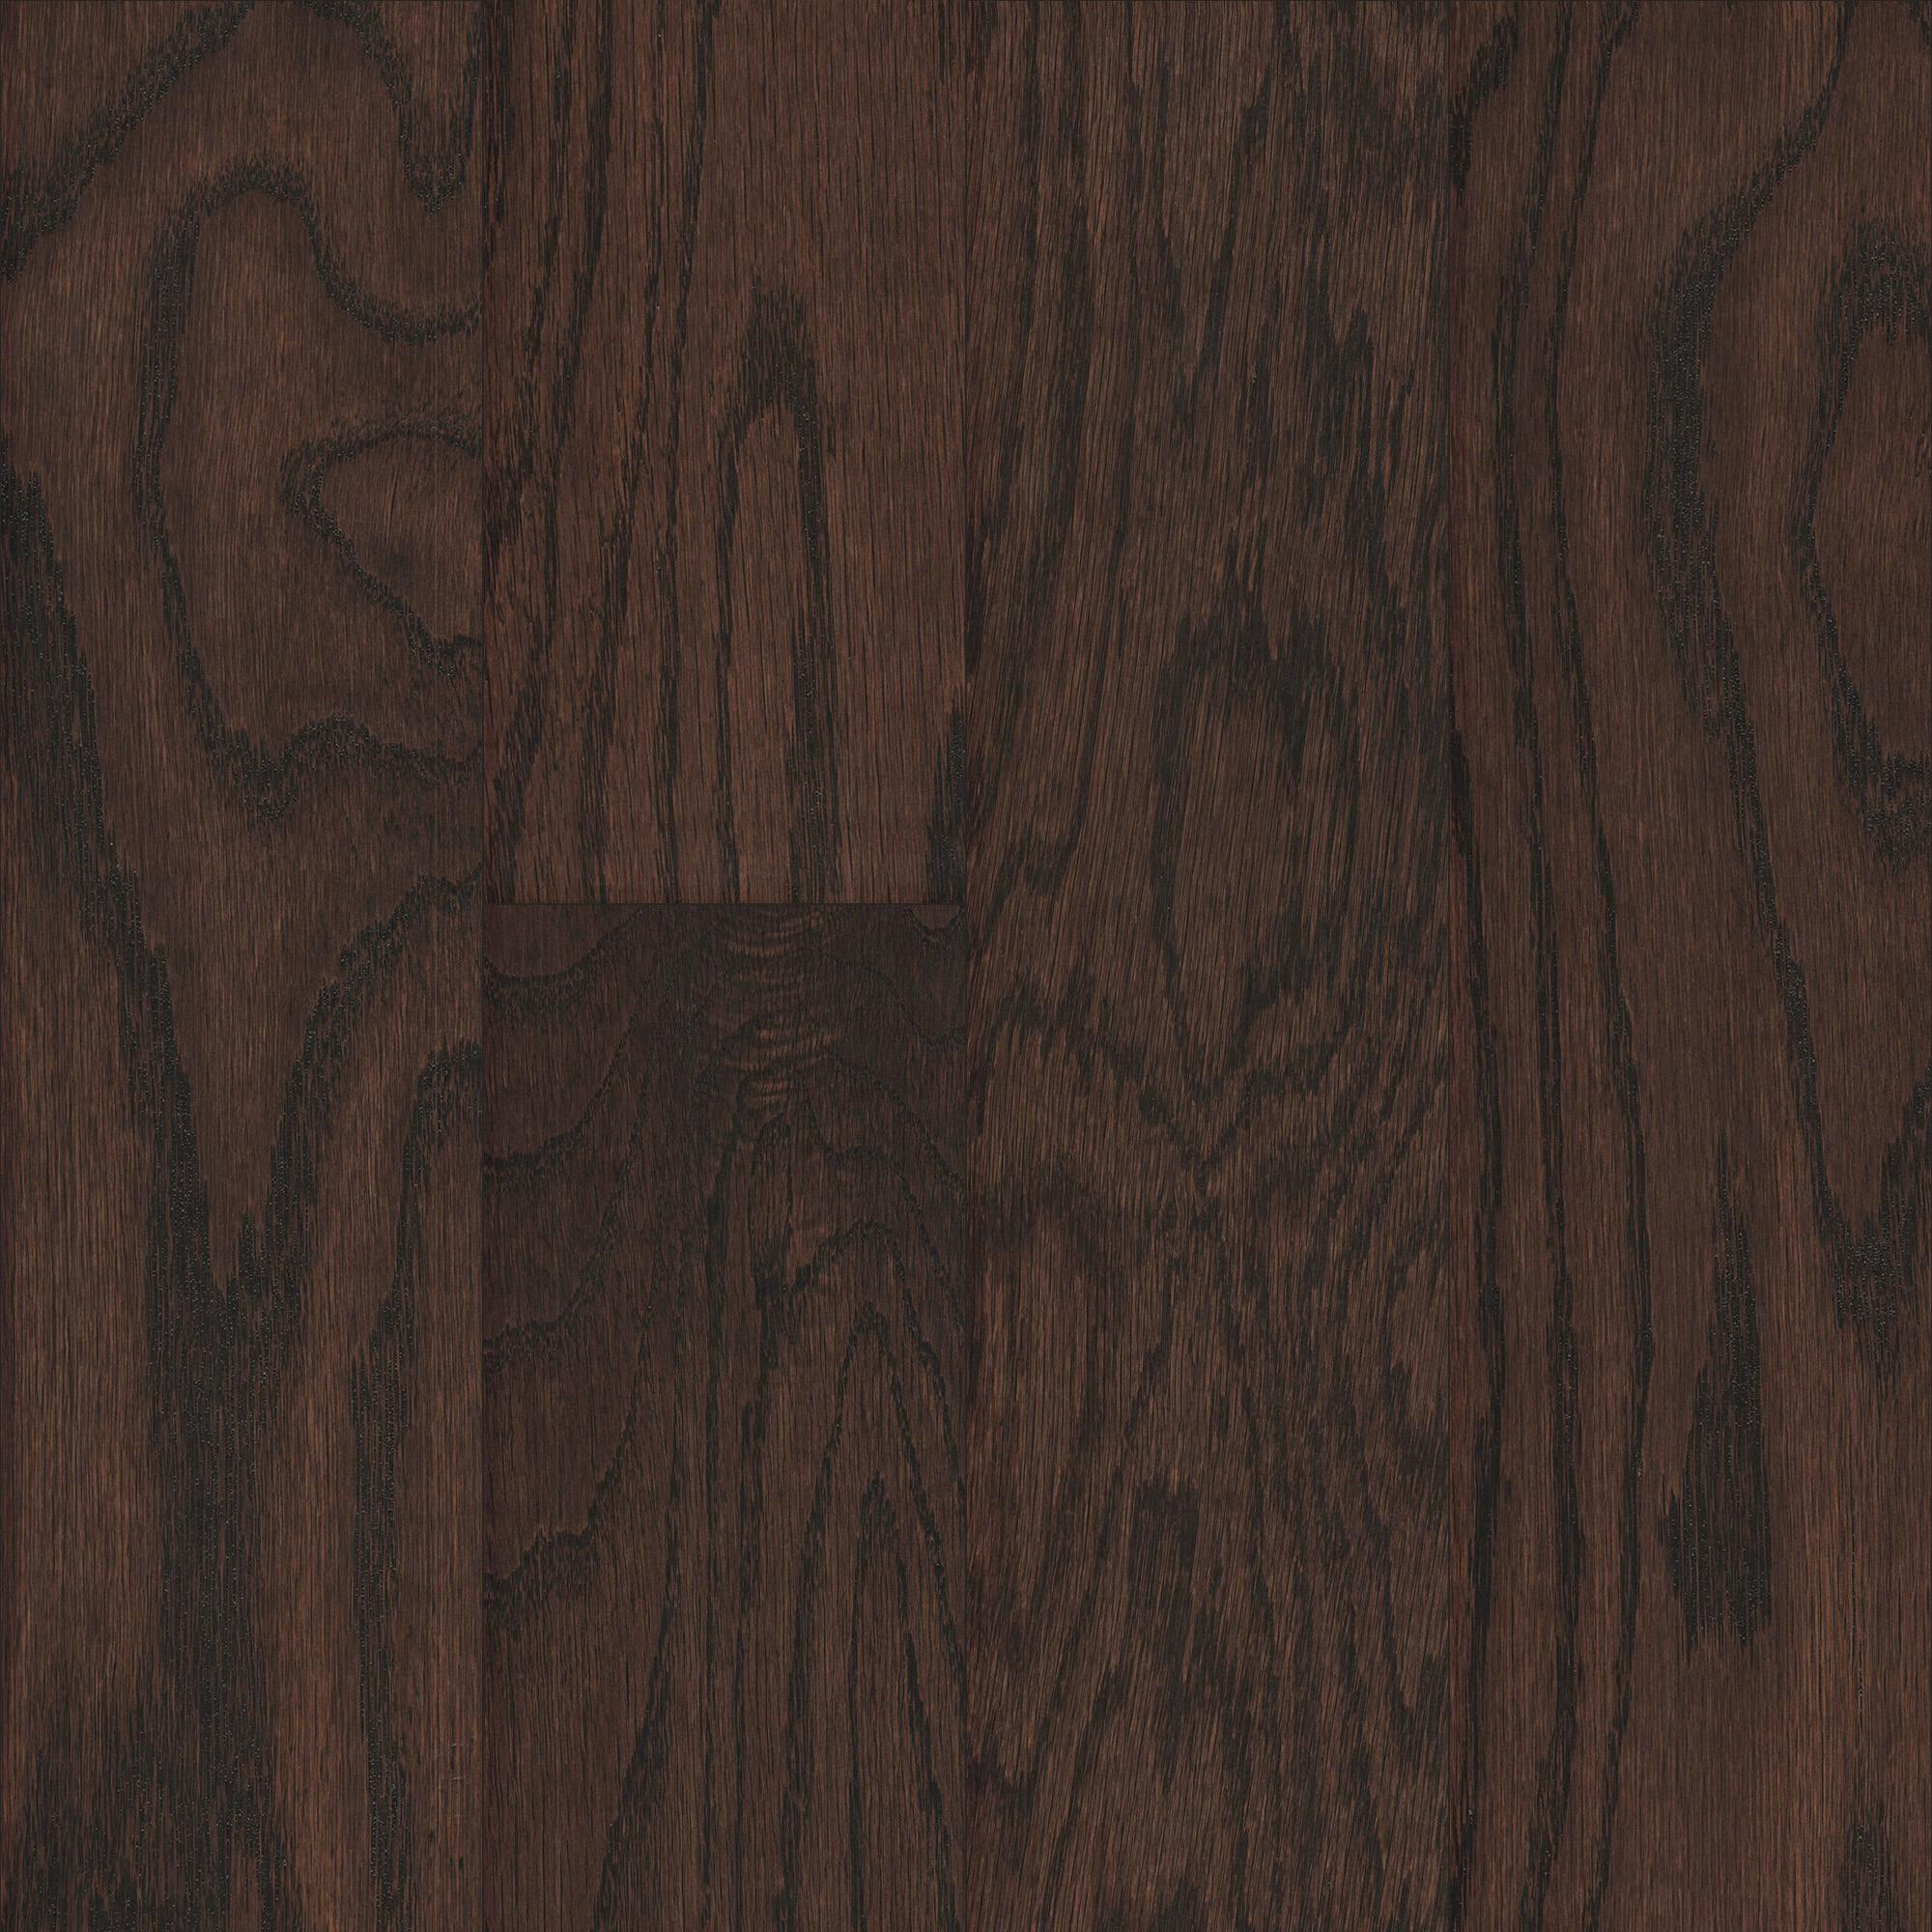 tongue and groove engineered hardwood flooring of mullican ridgecrest oak burnt umber 1 2 thick 5 wide engineered with mullican ridgecrest oak burnt umber 1 2 thick 5 wide engineered hardwood flooring